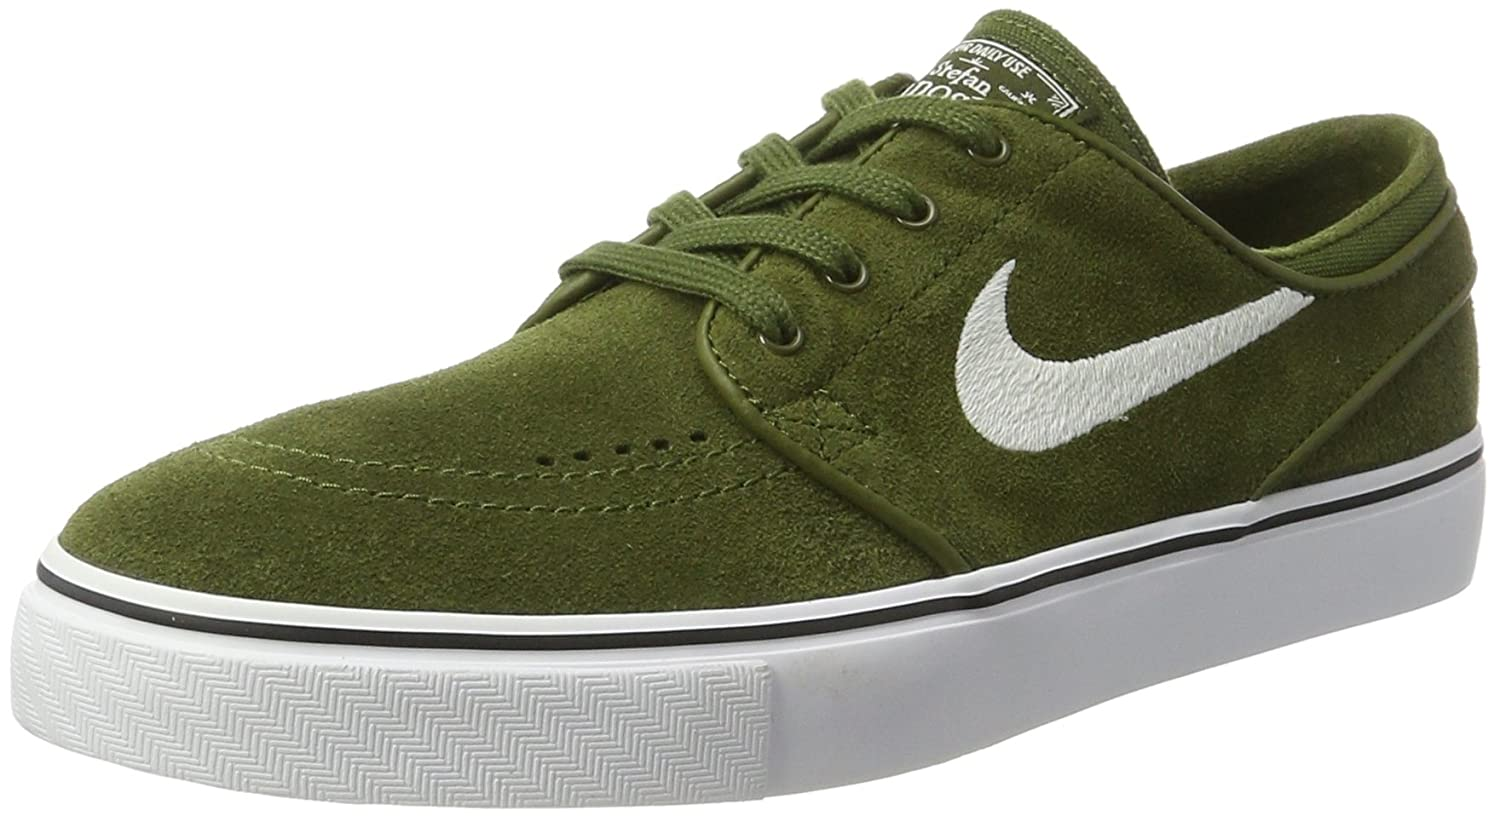 NIKE Men's Zoom Stefan Janoski Skate Shoe B01N9P2DTE 10 D(M) US|Legion Green / White-black